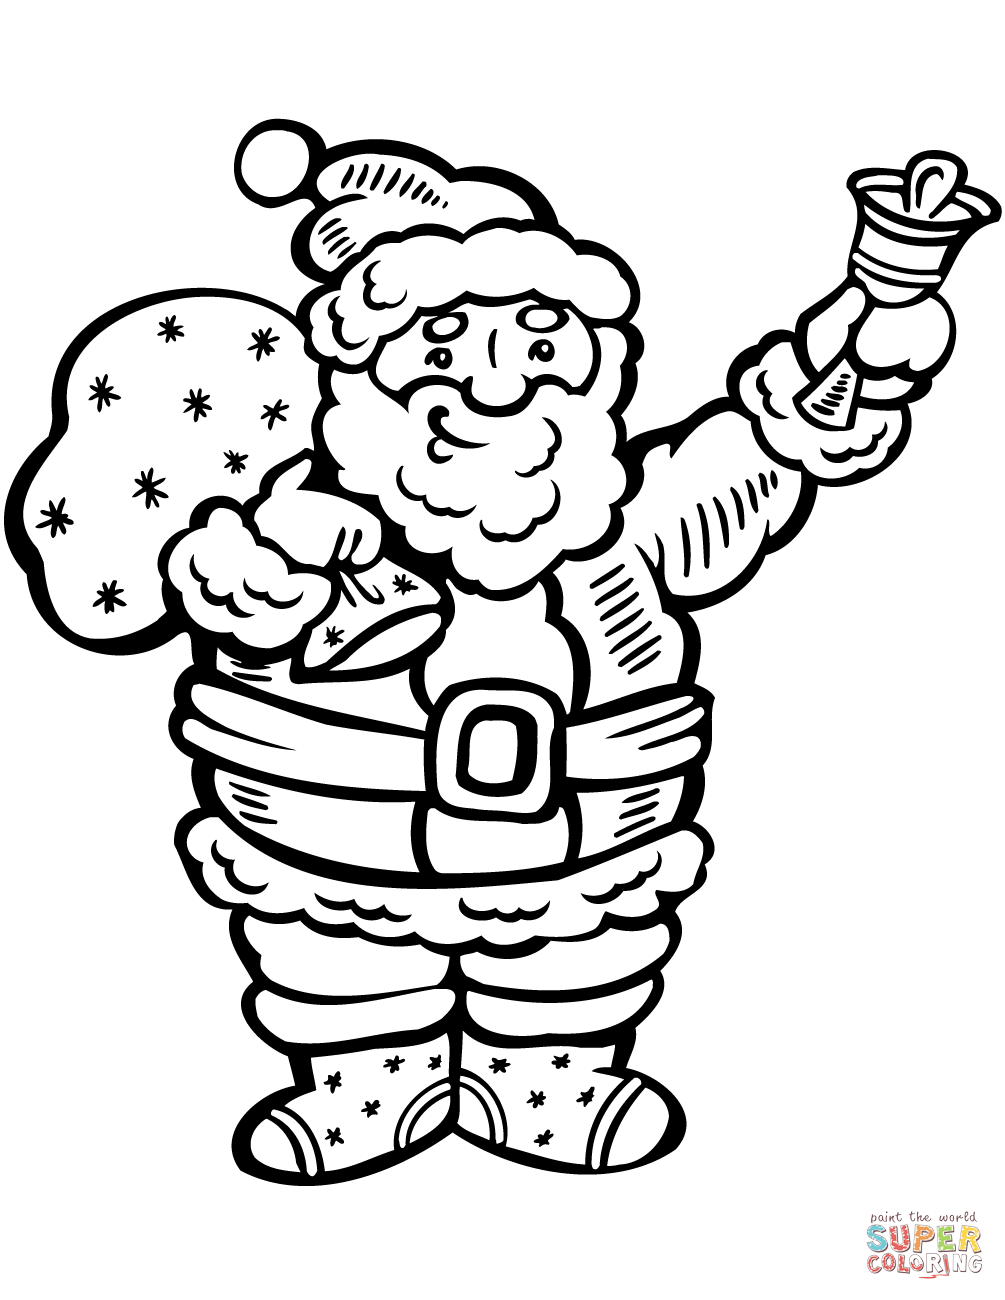 1005x1300 Santa Claus Ringing The Bell Coloring Page Free Printable